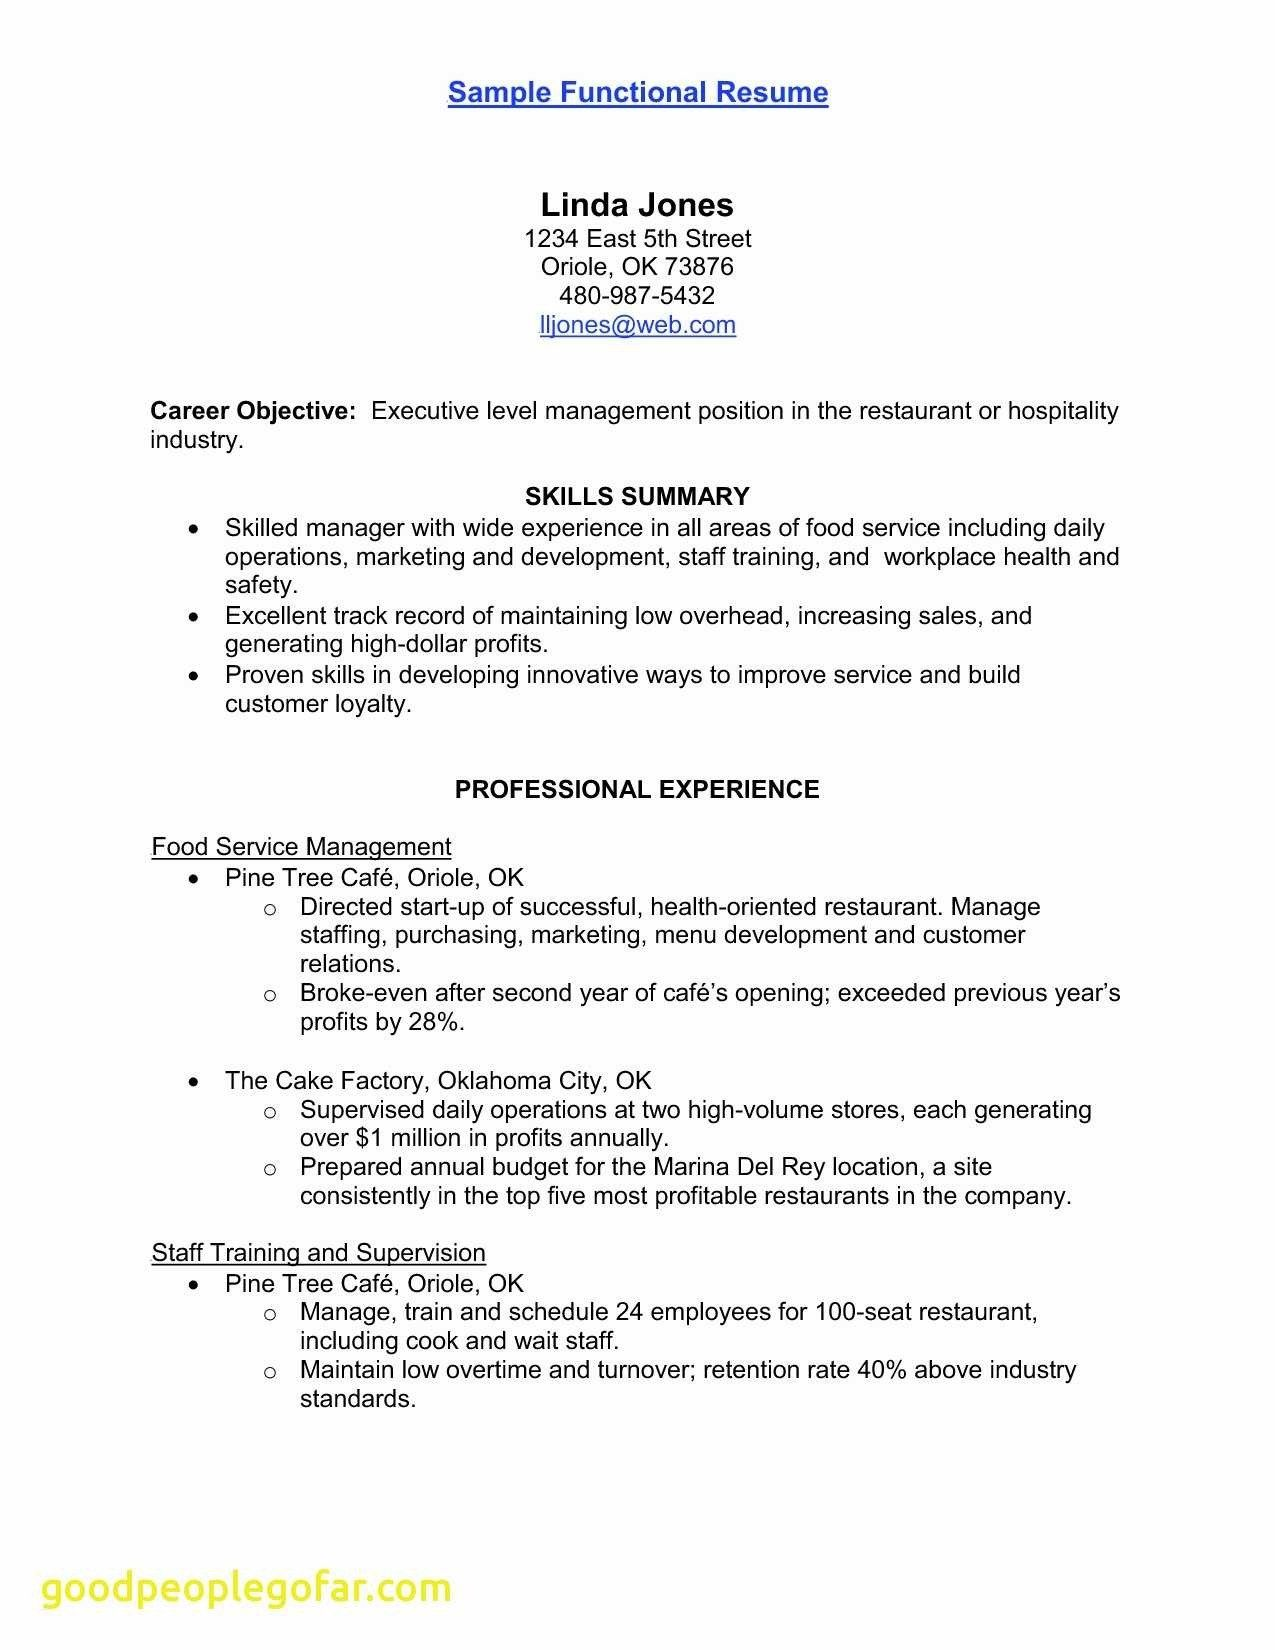 77 Cool Photos Of Sample Resume For Customer Service In Restaurant Check More At Https Www Ourpetscrawley Com 77 Cool Photos Of Sample Resume For Customer Ser